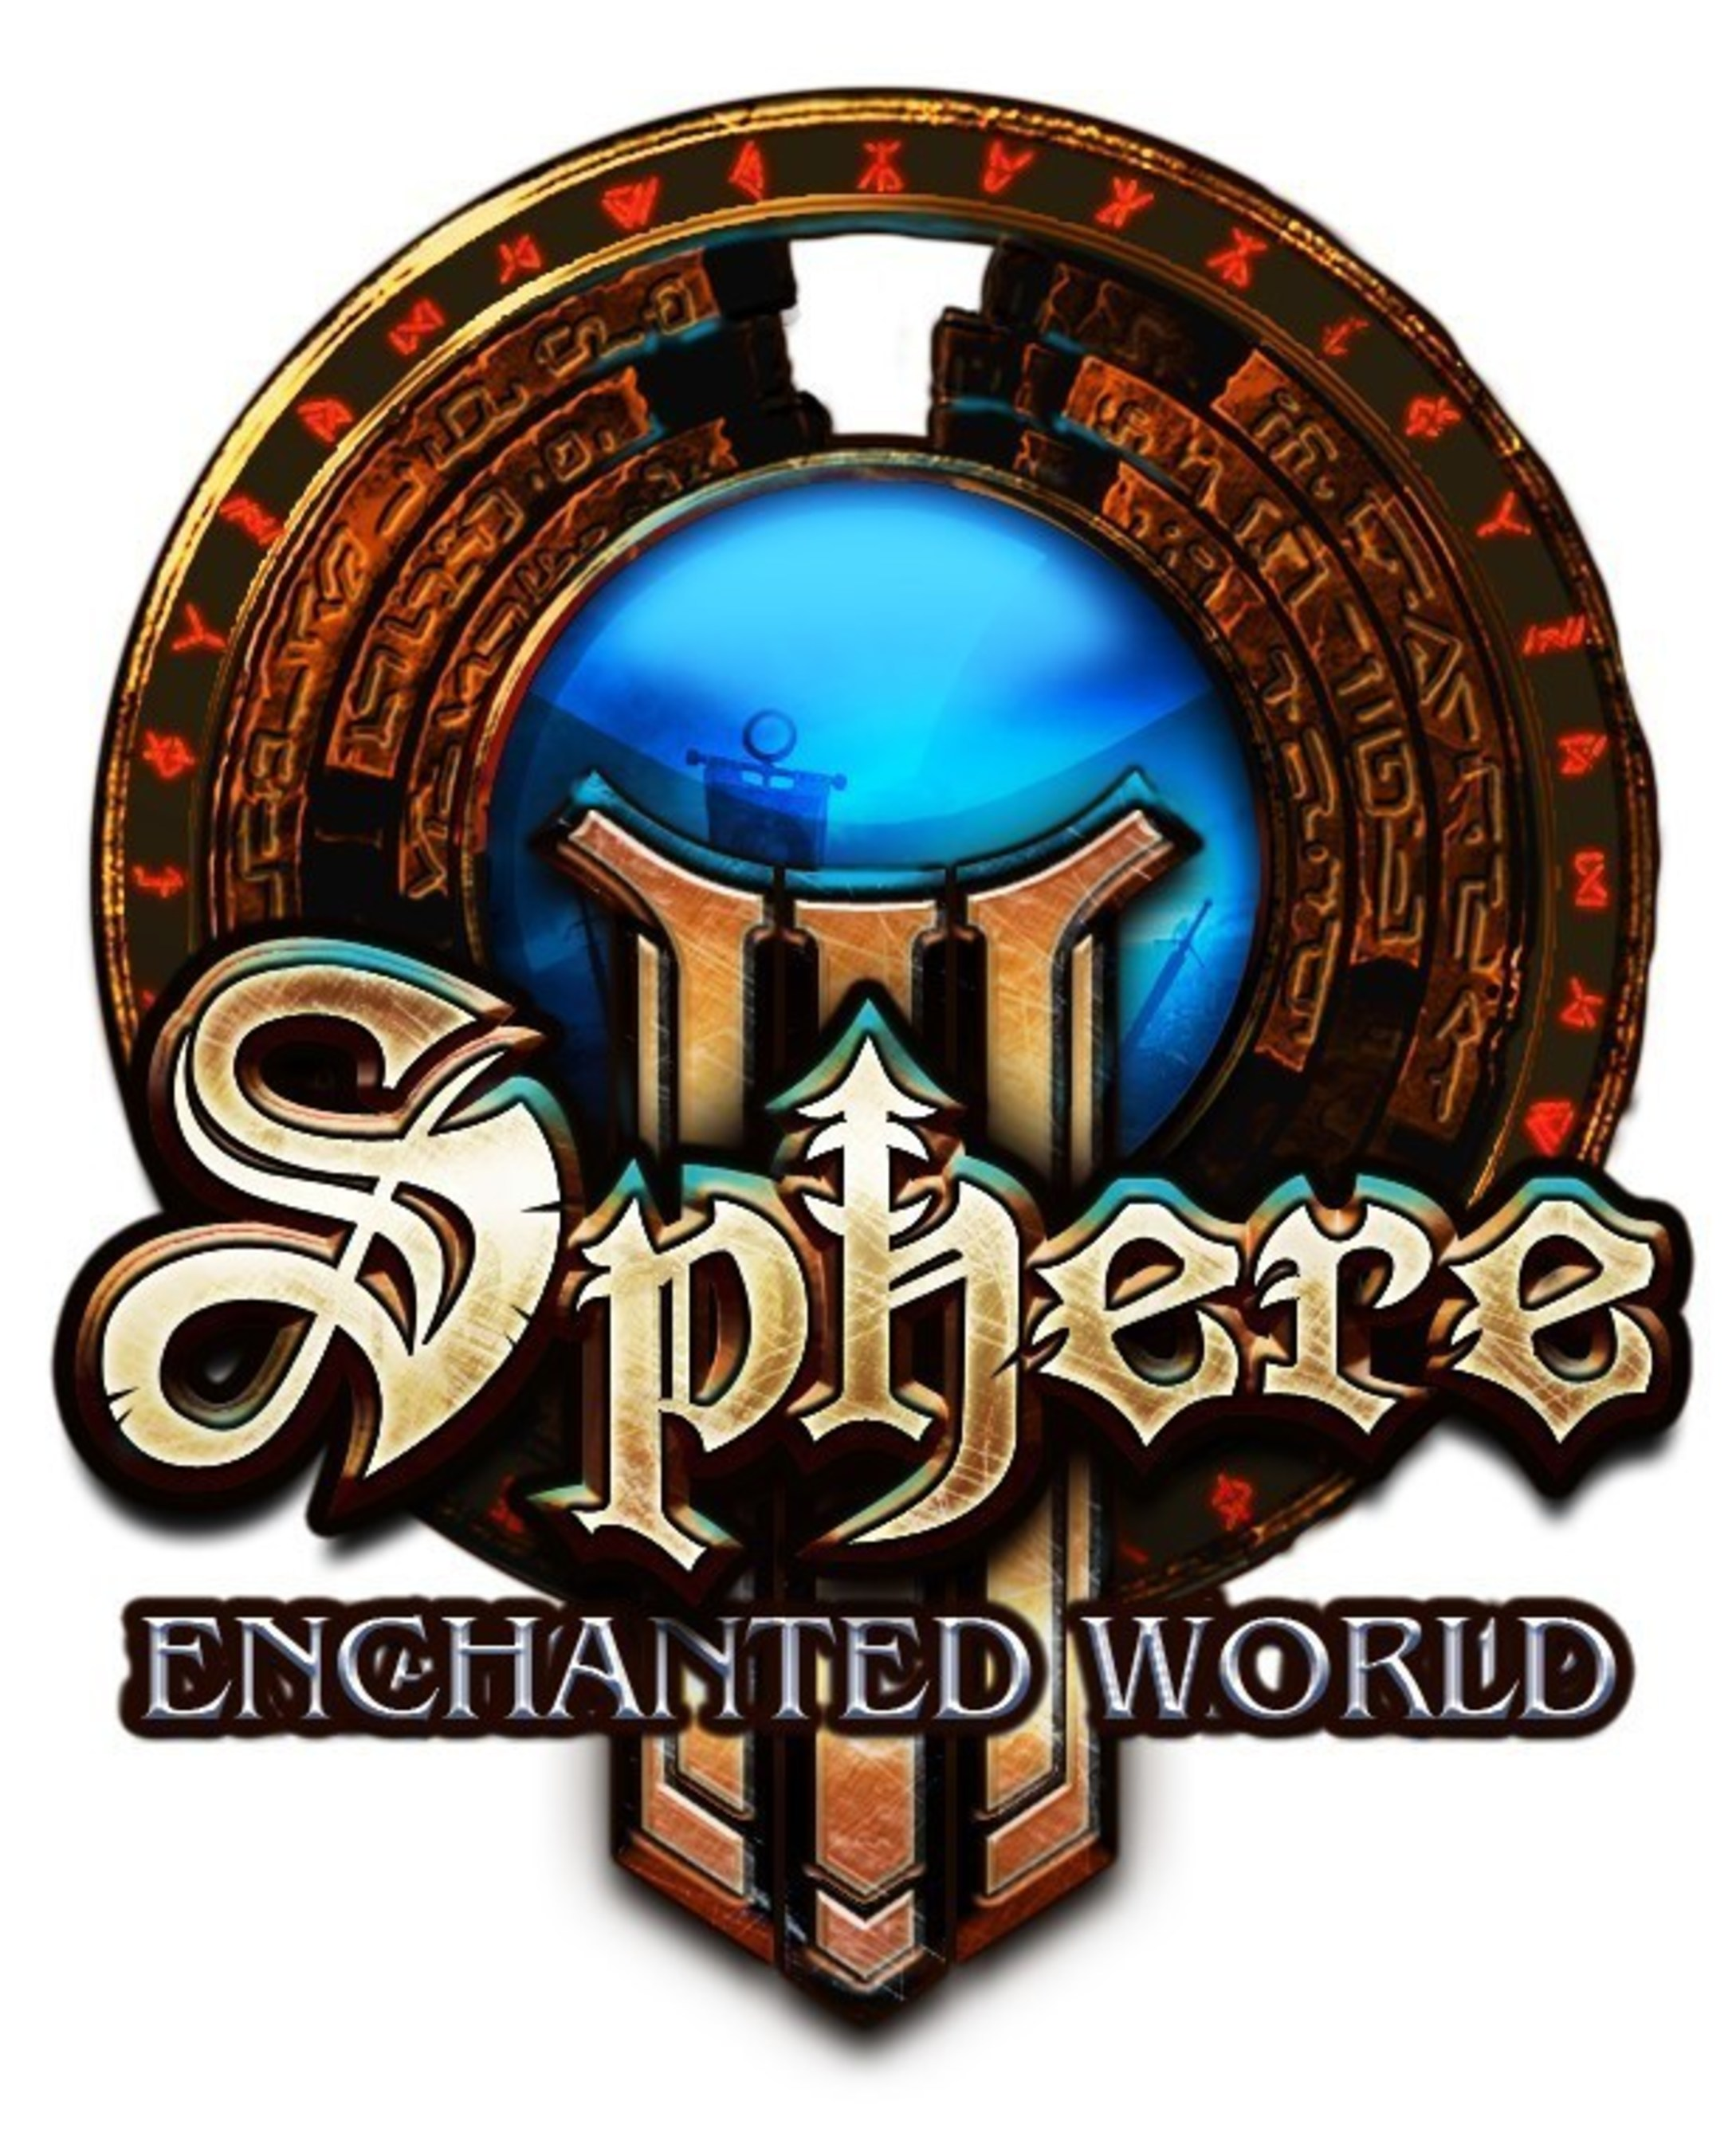 Sphere 3: Enchanted World is out now!